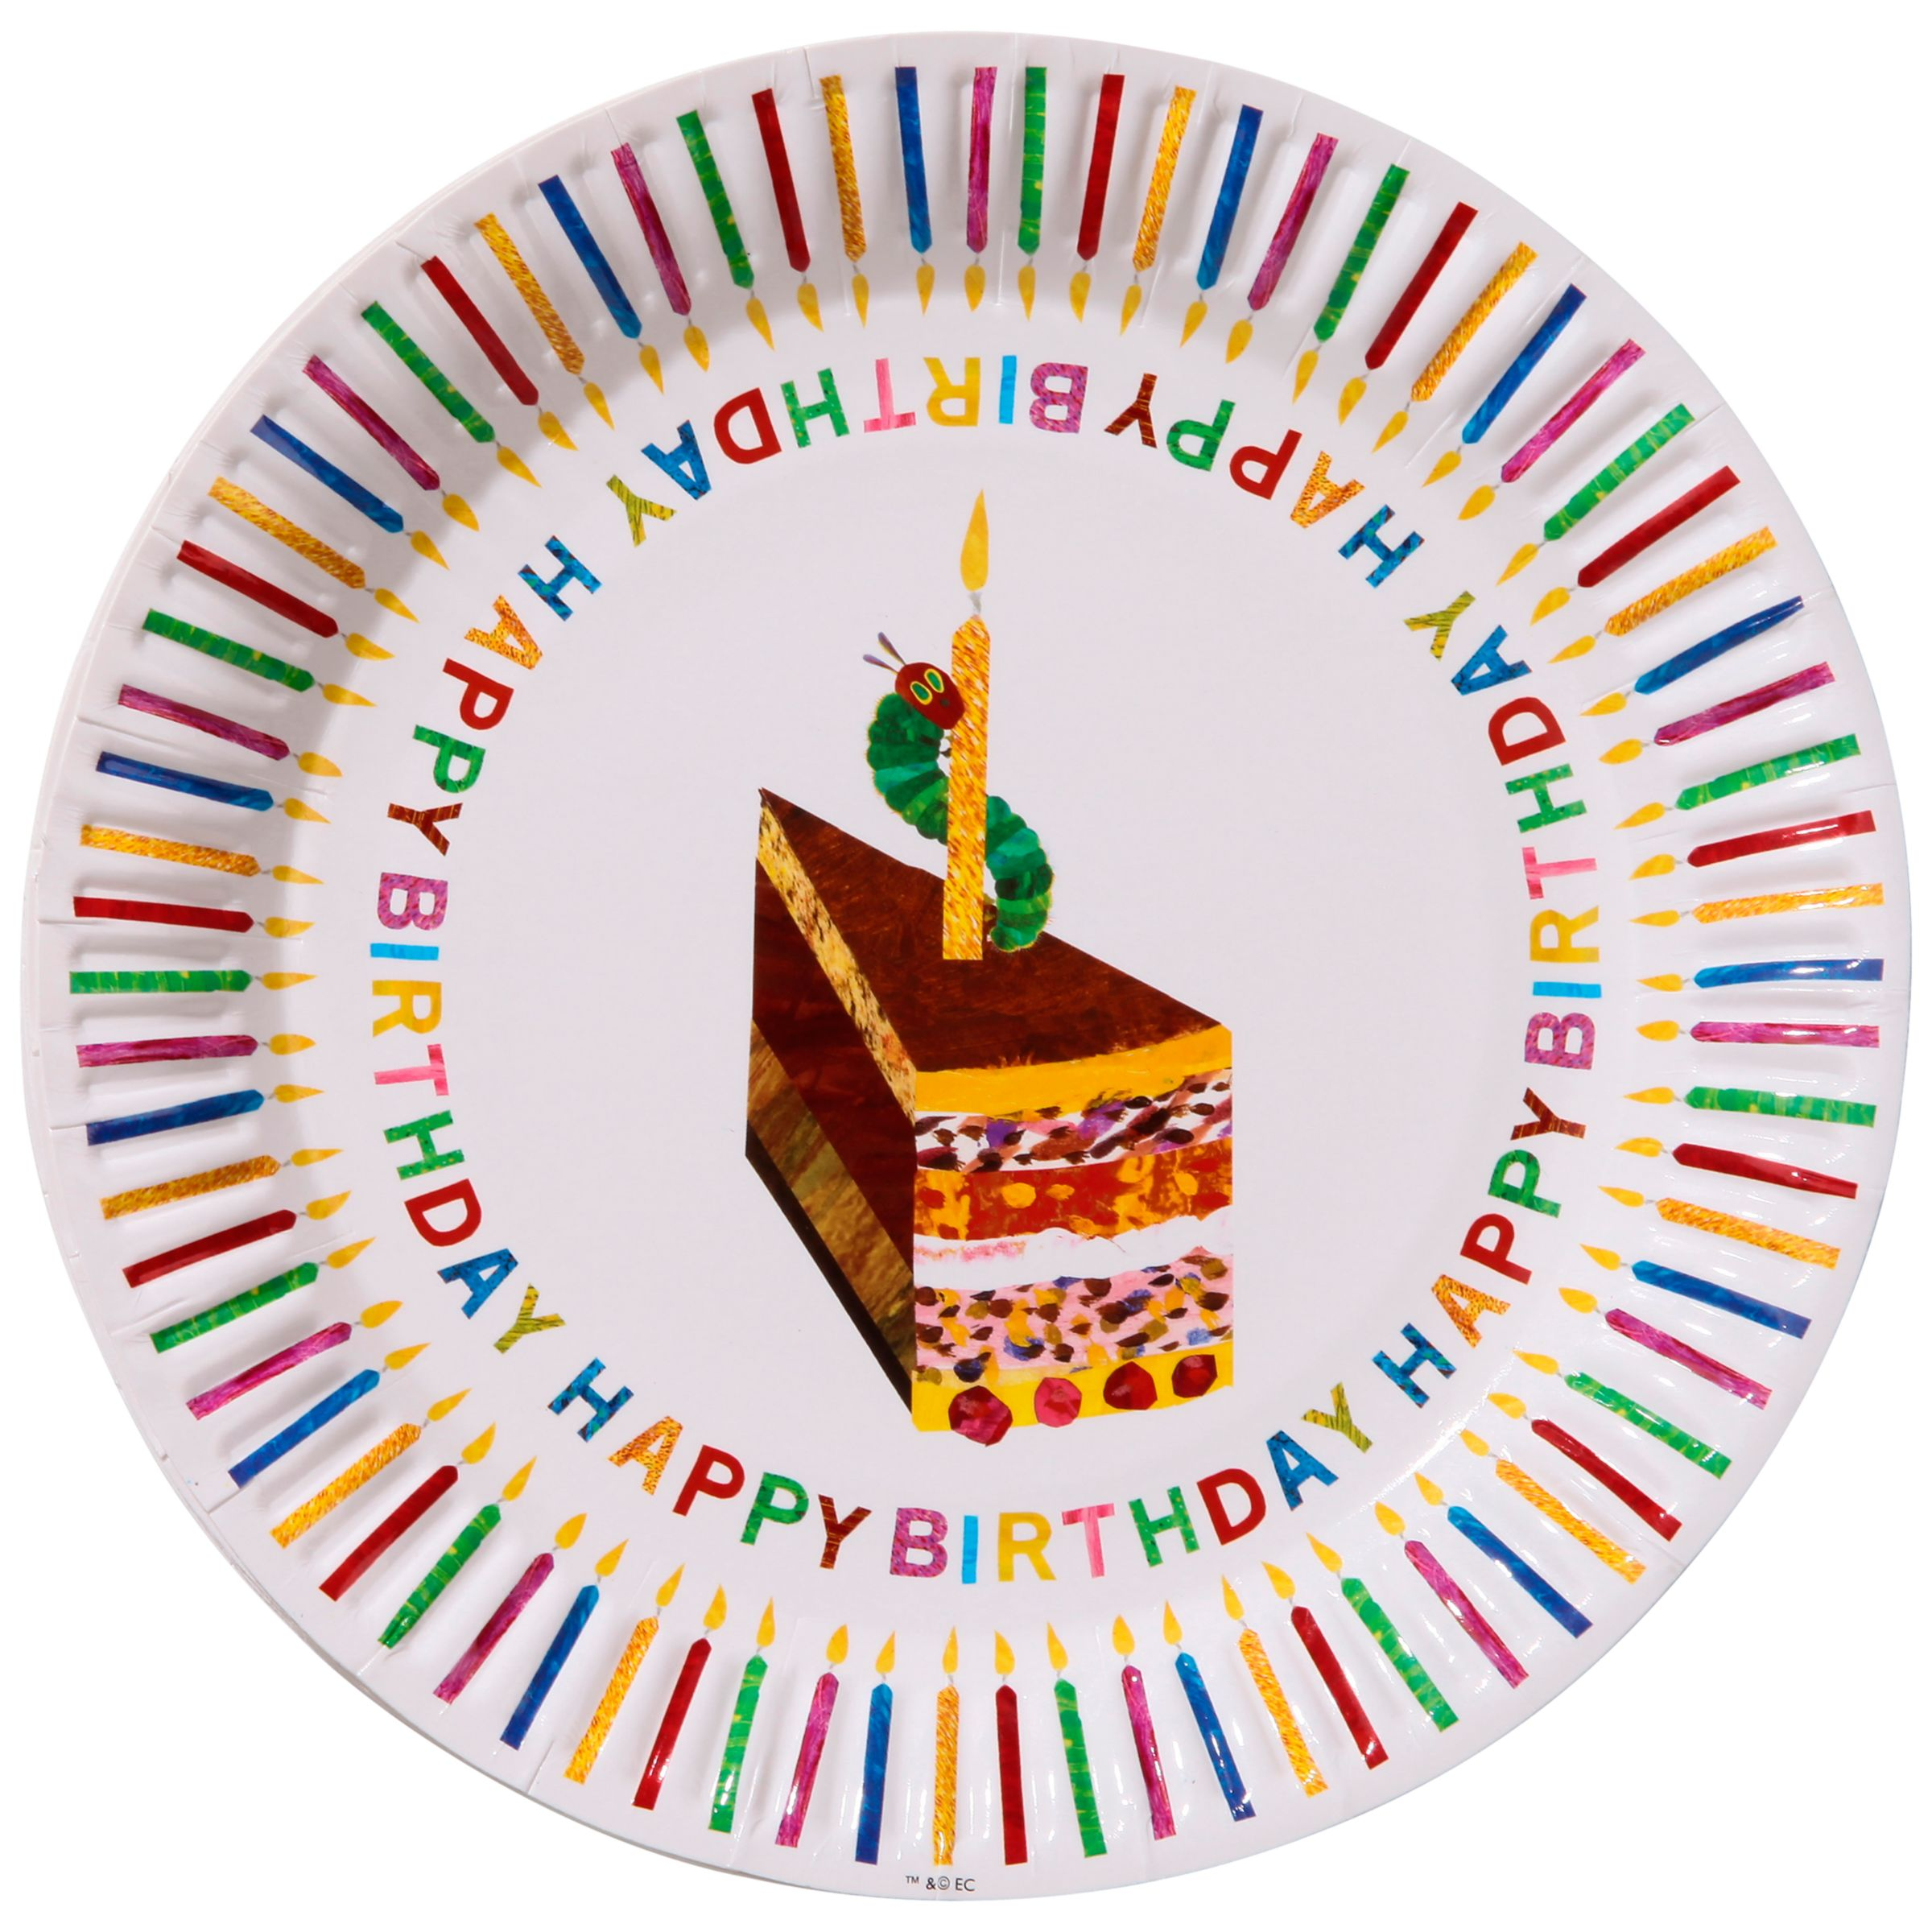 Hungry Caterpillar Birthday Plates, Pack of 8